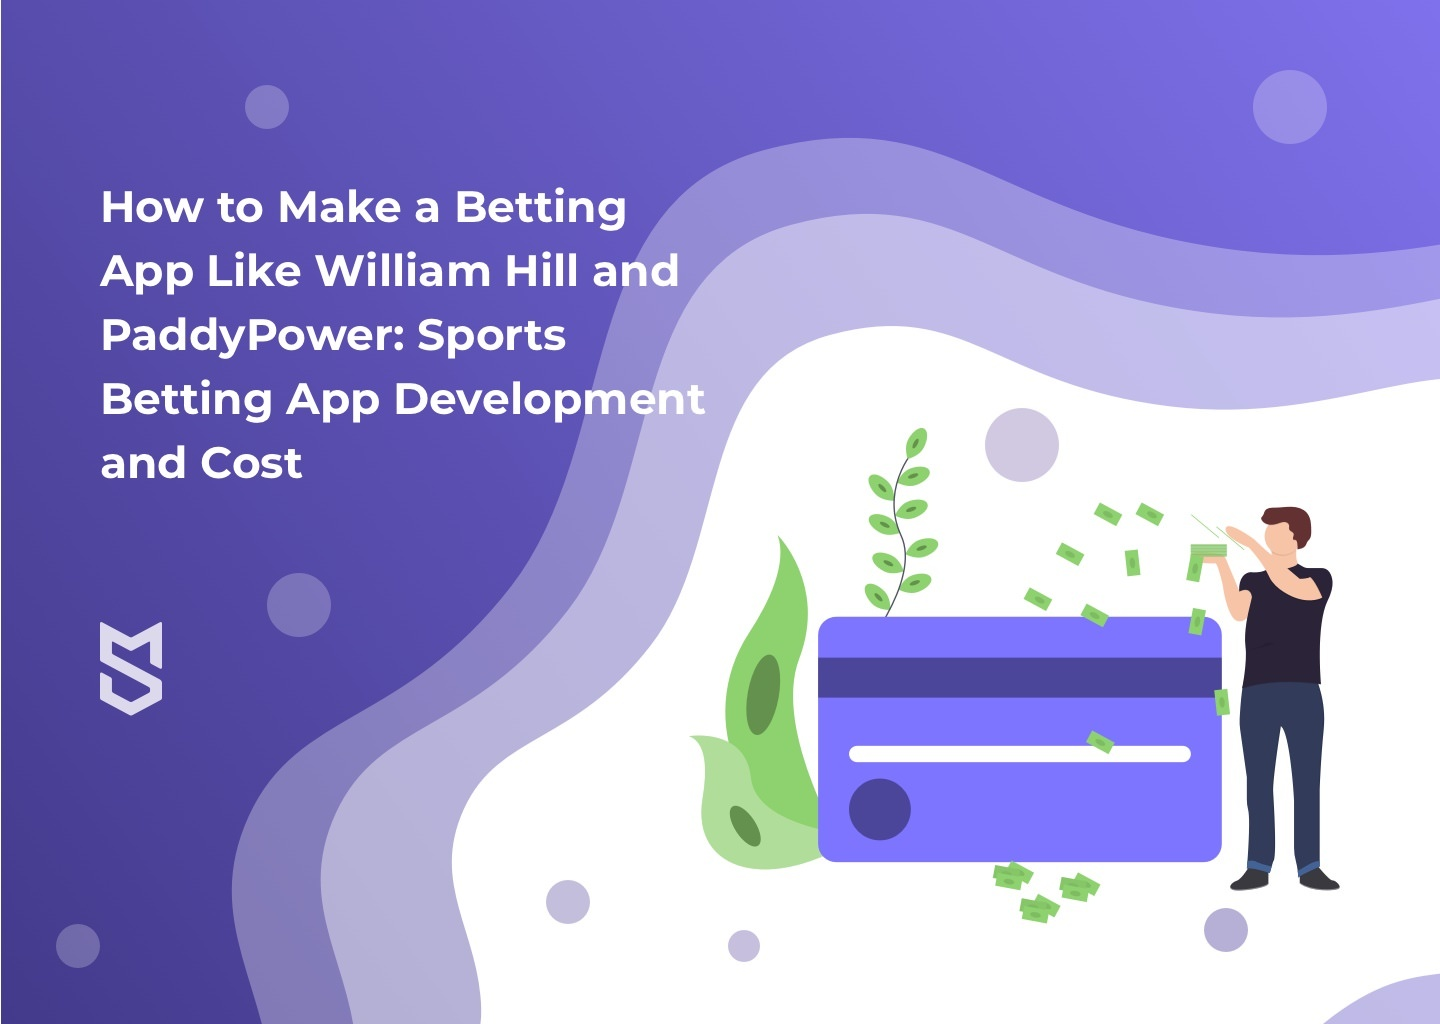 How much money do I need to start an online sports betting